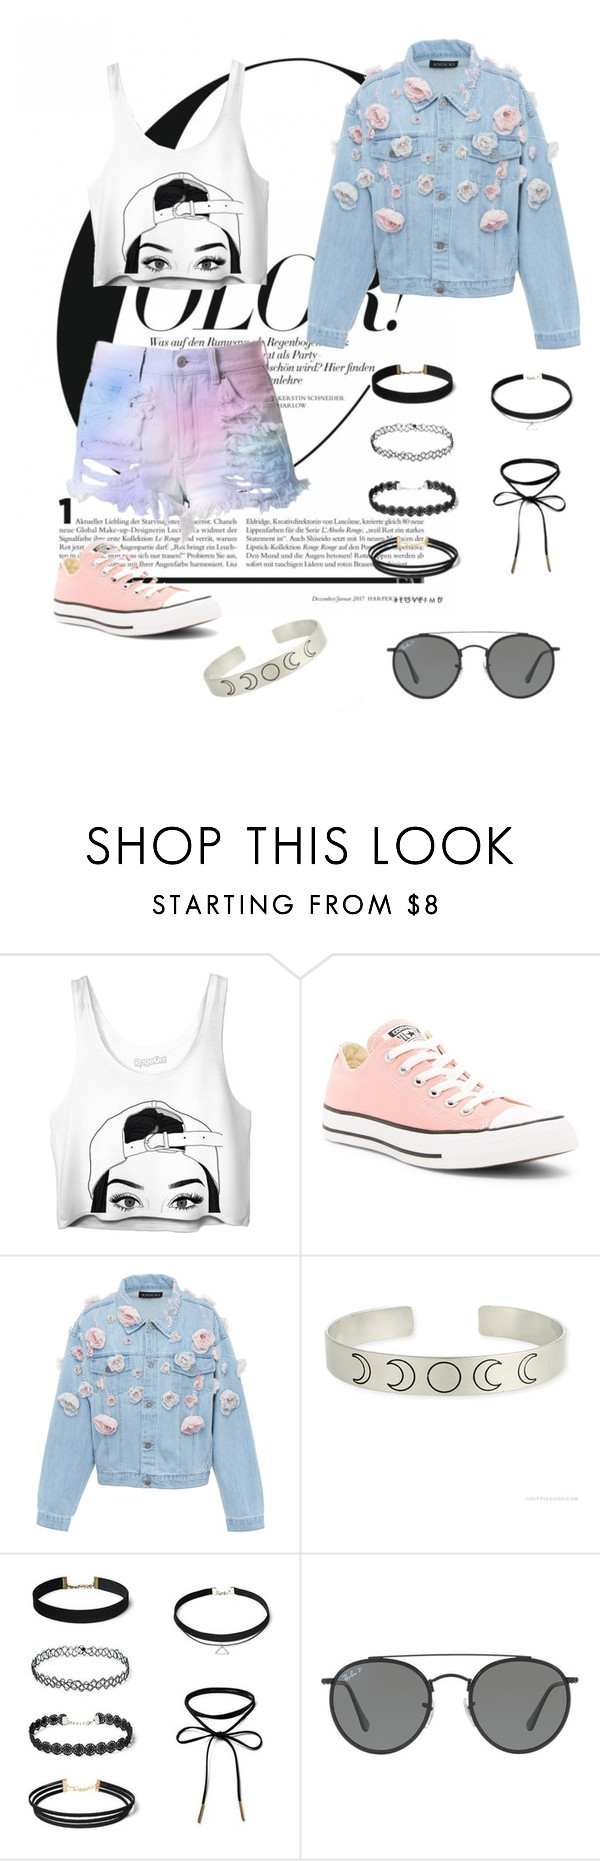 """""""Tumblr"""" by litm0115 ❤ liked on Polyvore featuring Converse, Anouki, Ray-Ban and tumblr"""